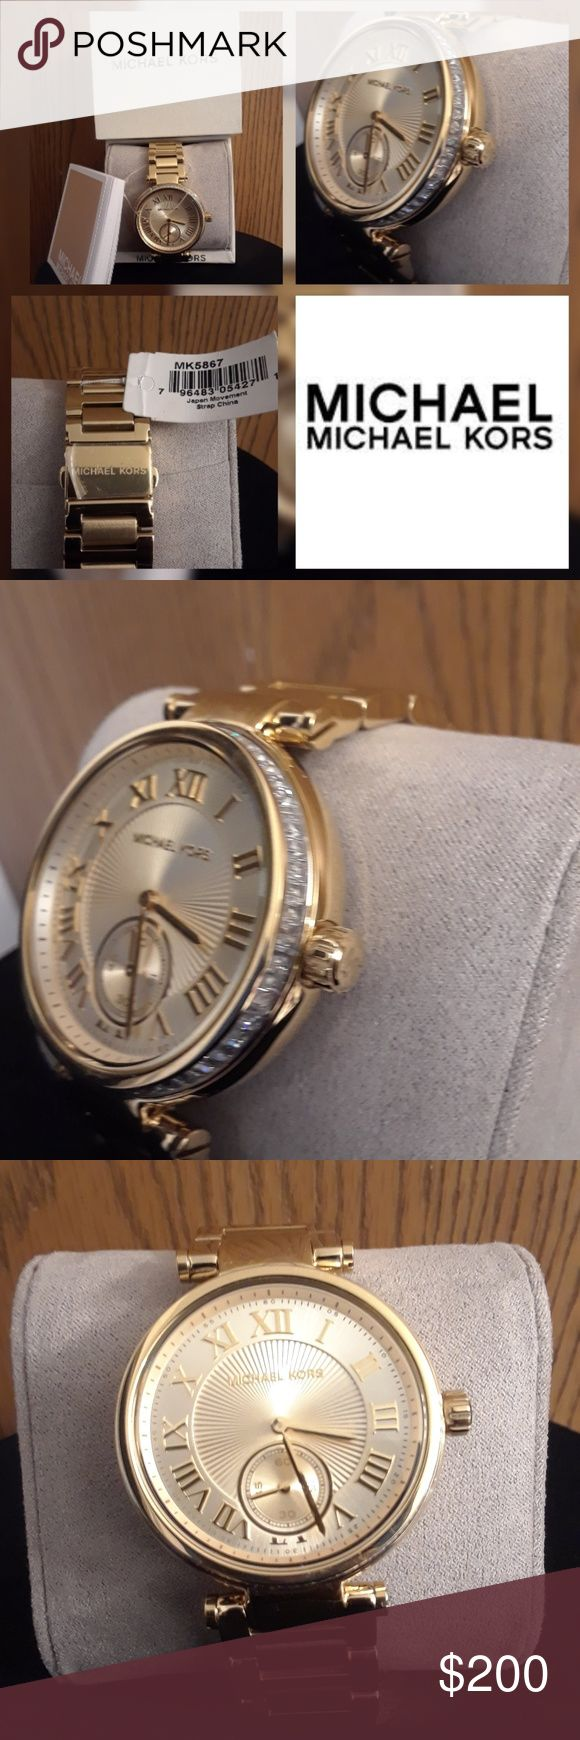 """BRAND SPANKING NEW """"MICHAEL KORS"""" WATCH!!! GORGEOUS BRAND NEW """"MICHAEL KORS"""" WATCH! TICKETS ATTACHED, BOX,PILLOW,& INFO BOOKLET... GOLD PLATED / GENUINE CRYSTAL.  RETAIL $398 Michael Kors Accessories Watches"""